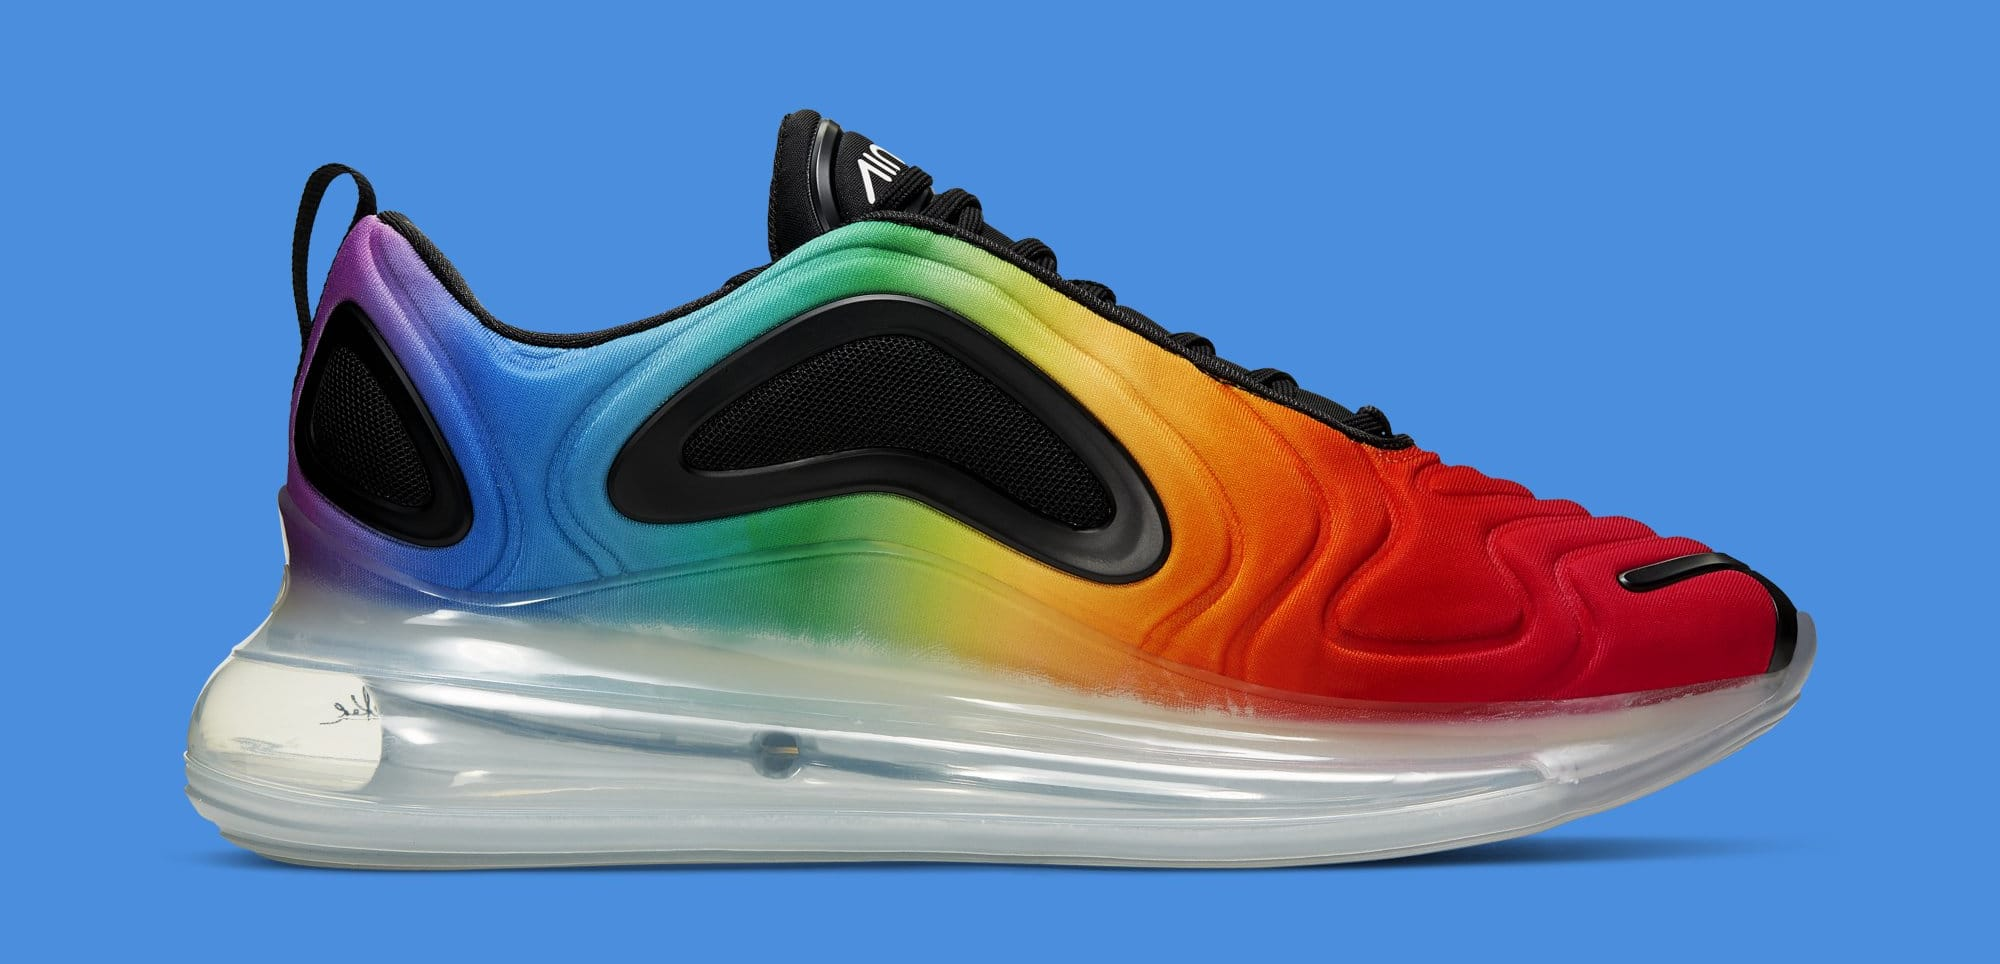 Nike Air Max 720 'Be True' CJ5472-900 (Medial)